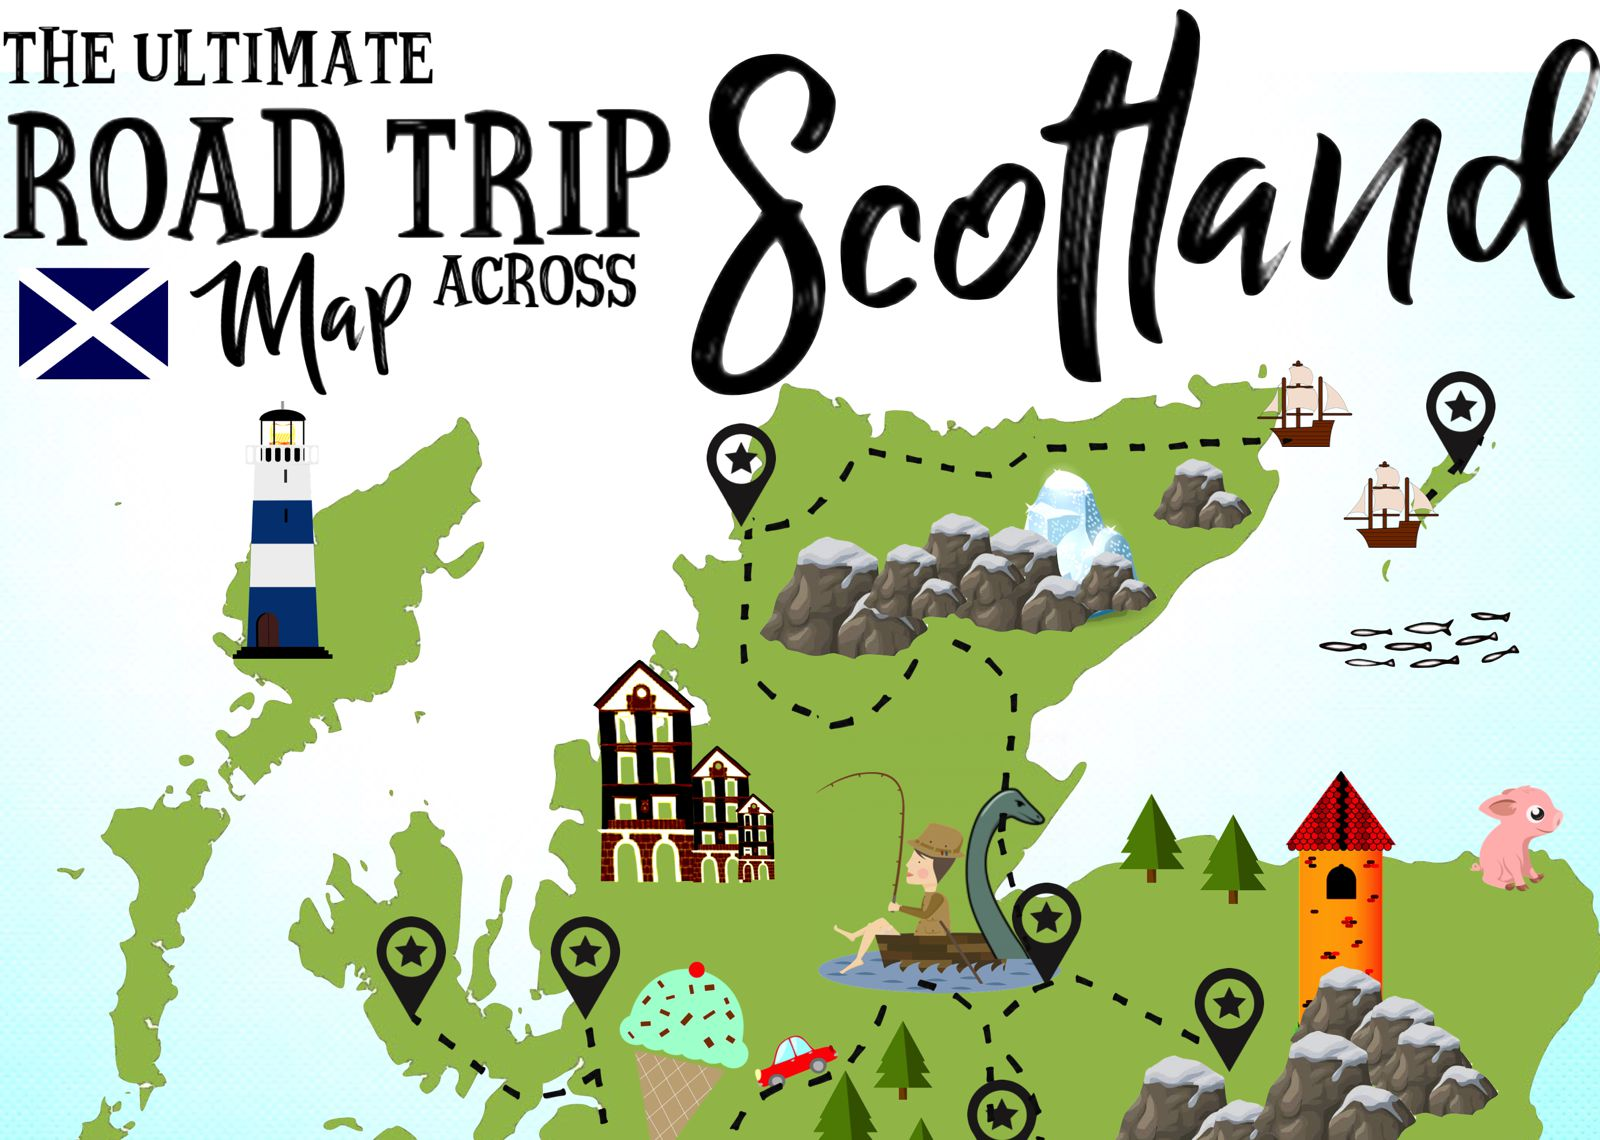 The Ultimate Map Of Things To See When In Scotland on My Country Study